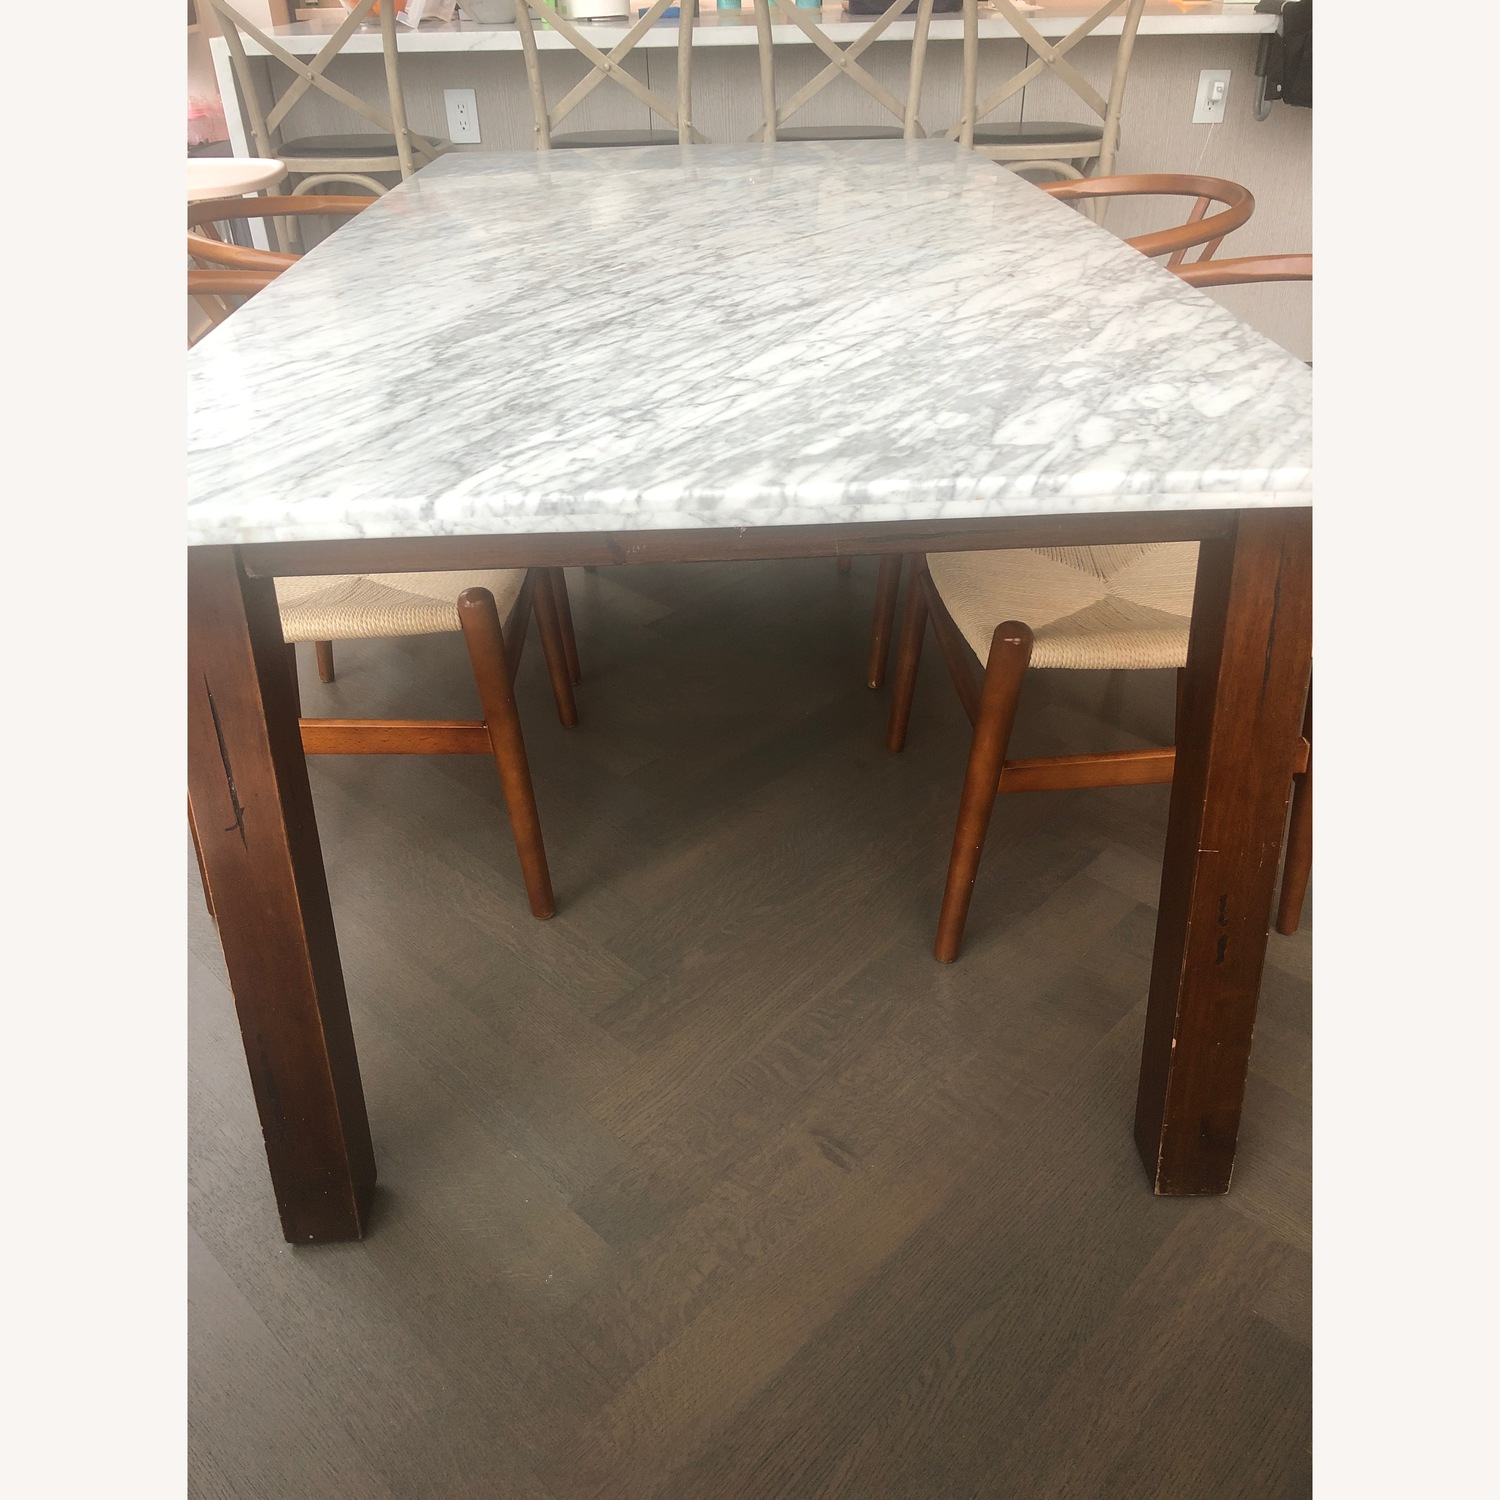 West Elm Marble & Wood Rectangular Dining Table - image-2